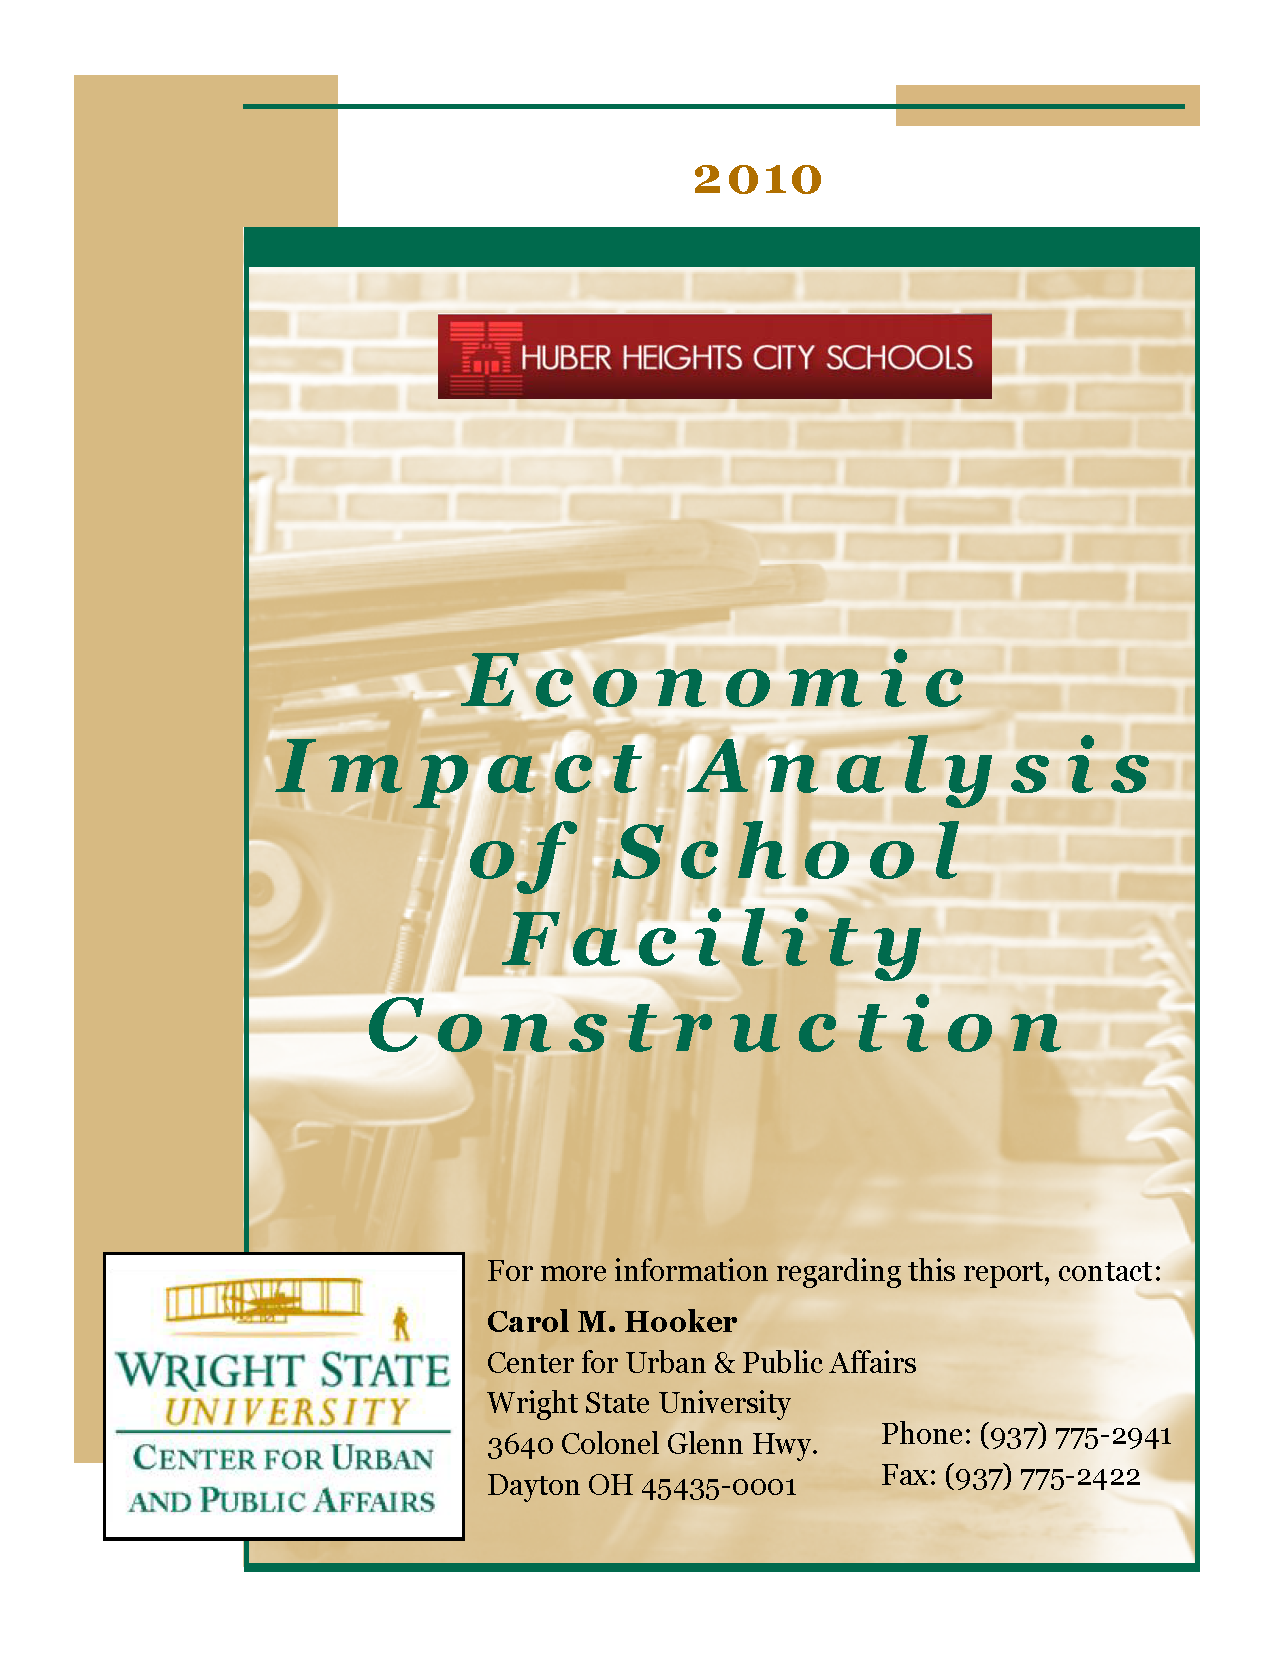 2010 Economic Impact Analysis of School Facility Construction_COVER.png